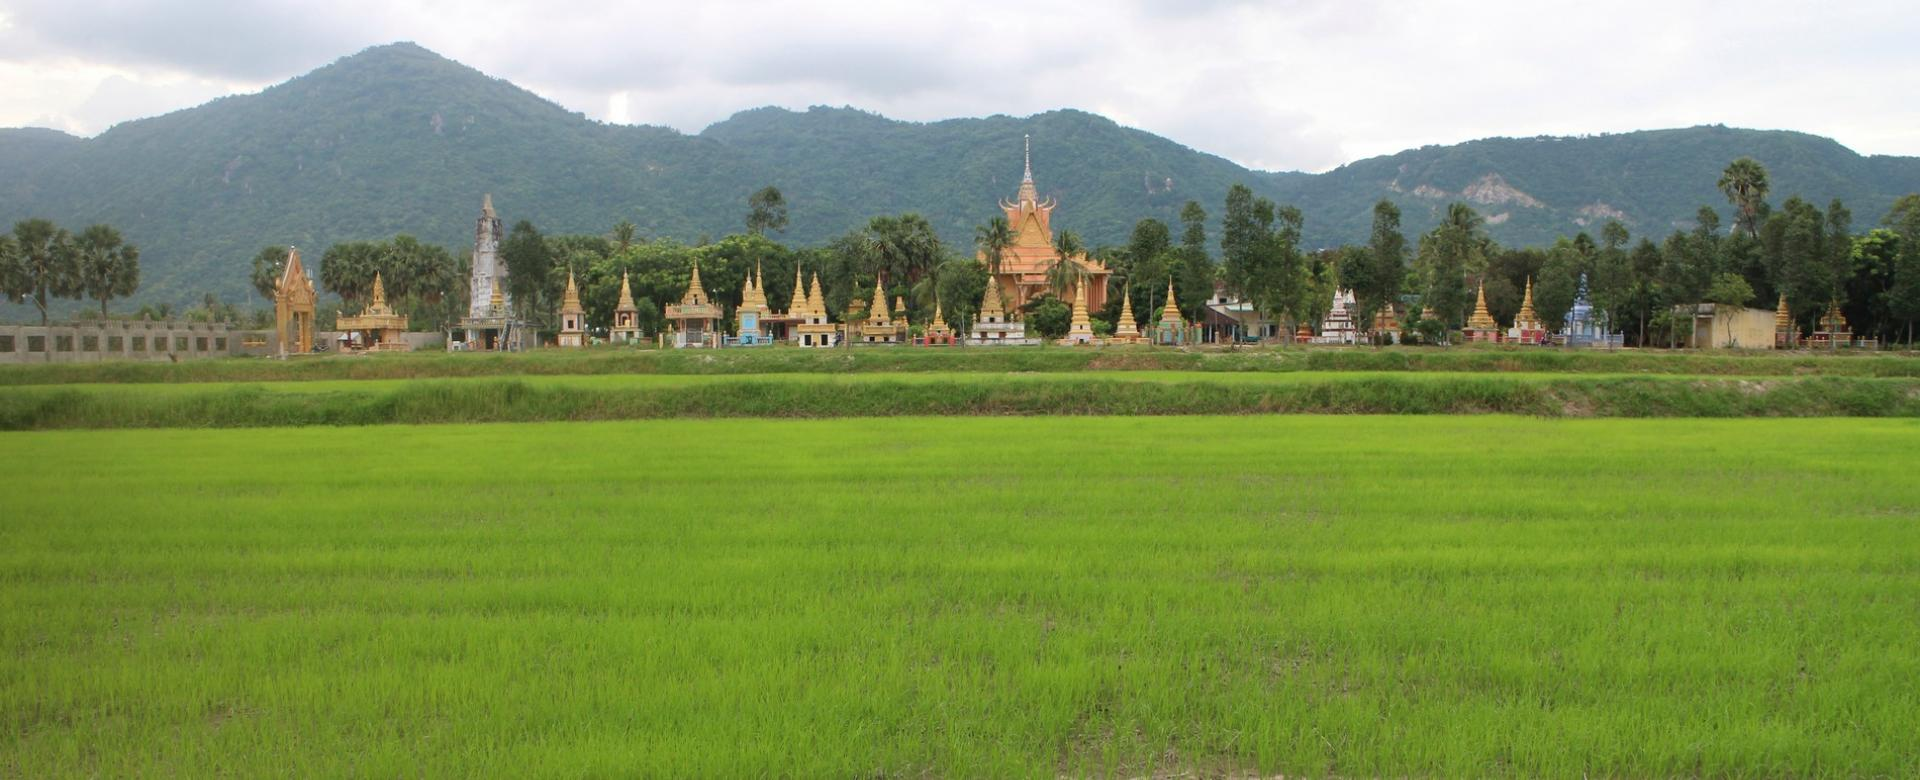 Cycling Mekong Delta 4 days/3 nights to Phnom Penh